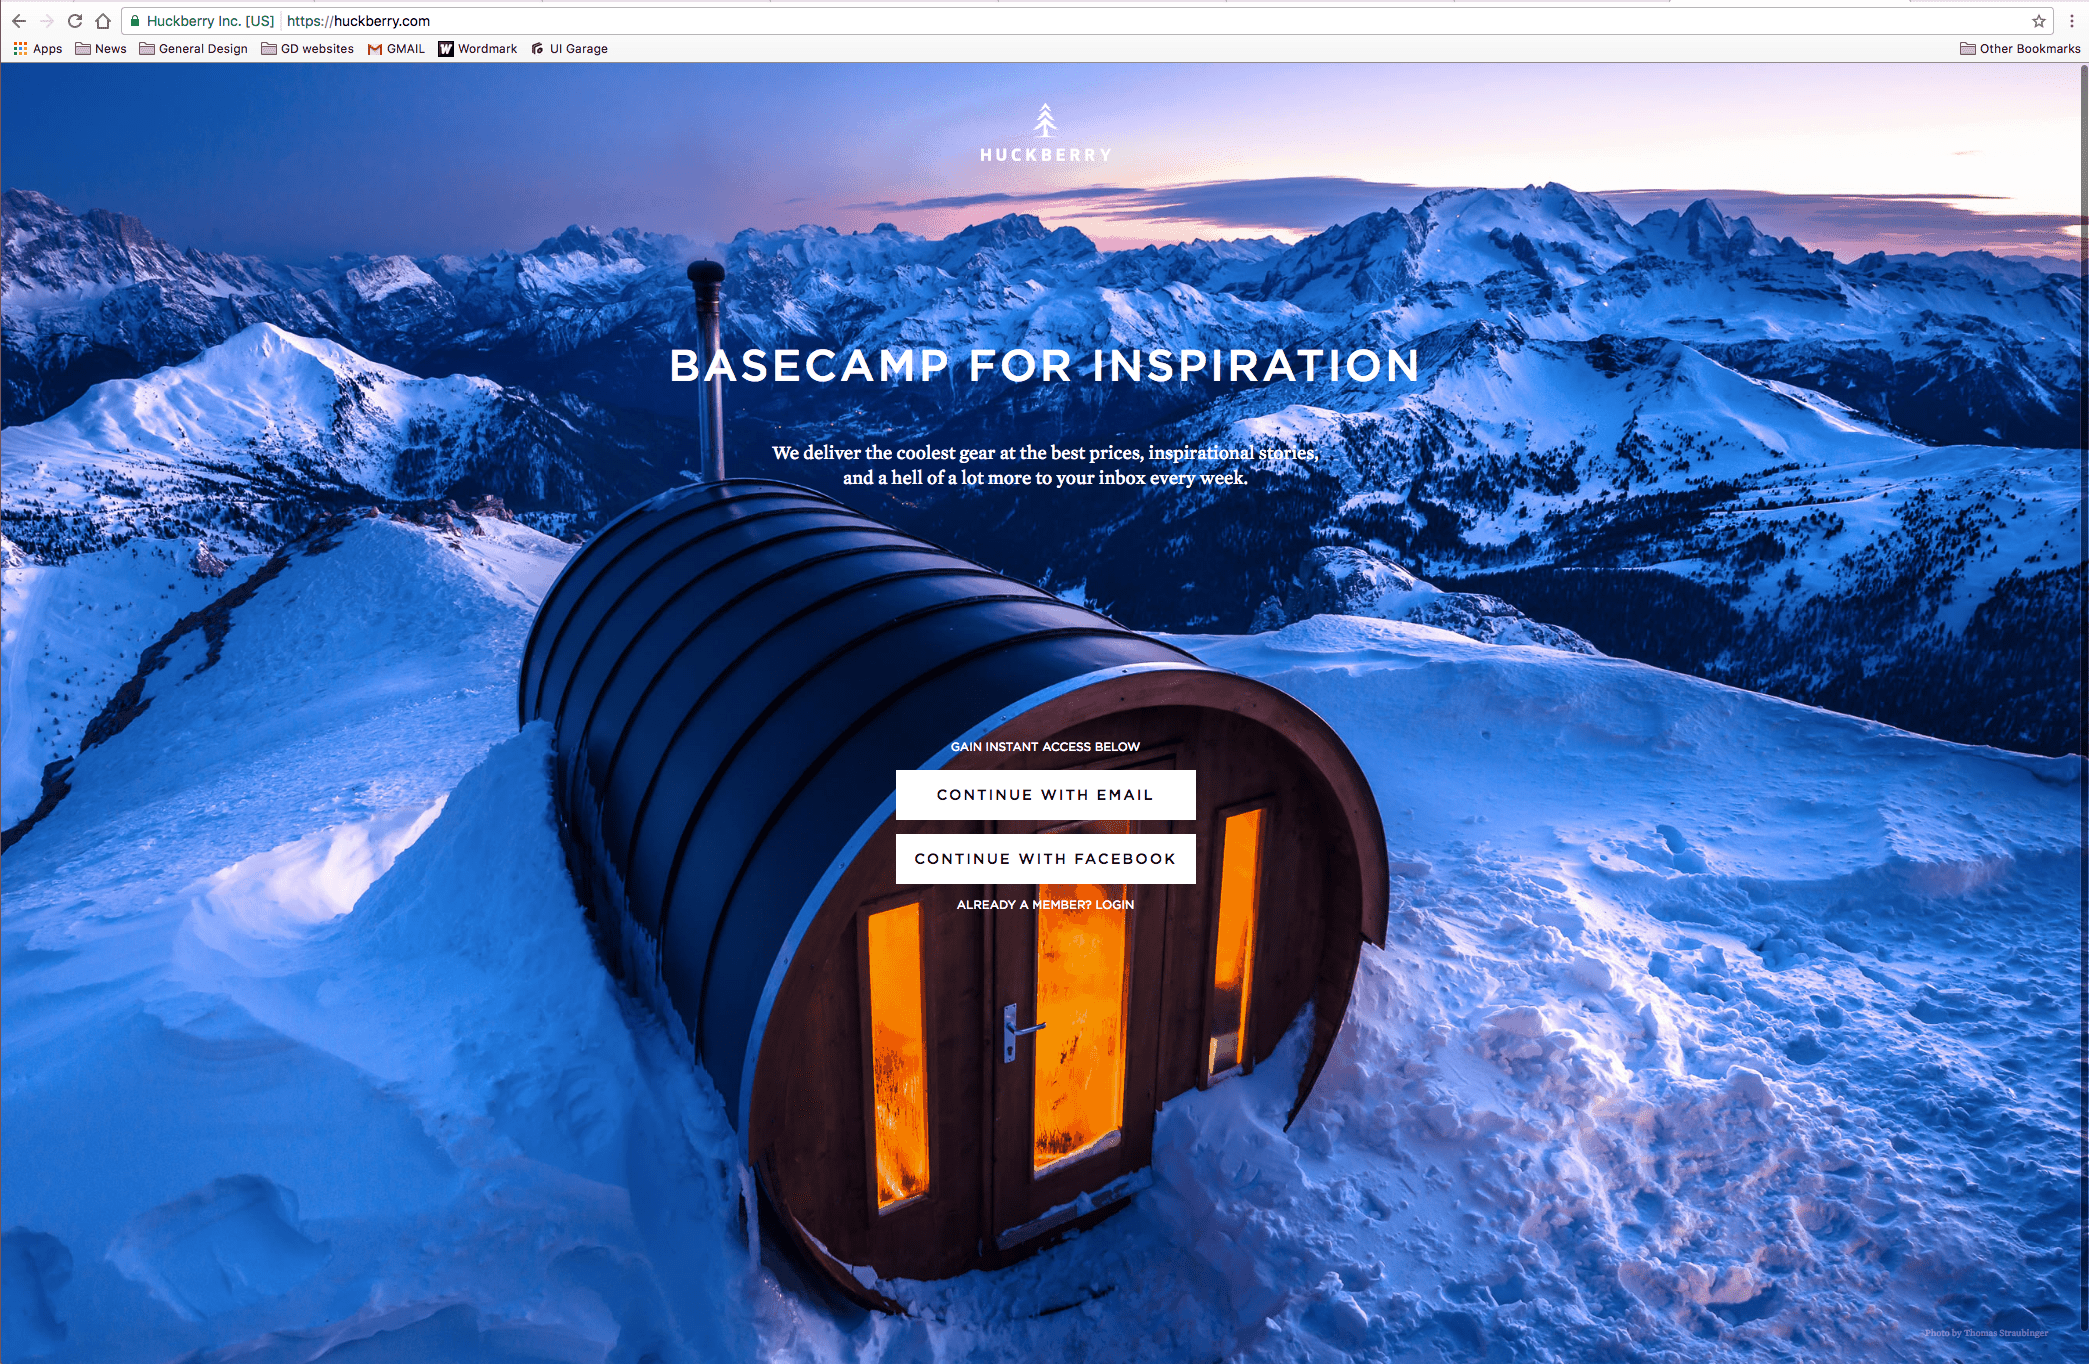 Landing Page by Huckberry